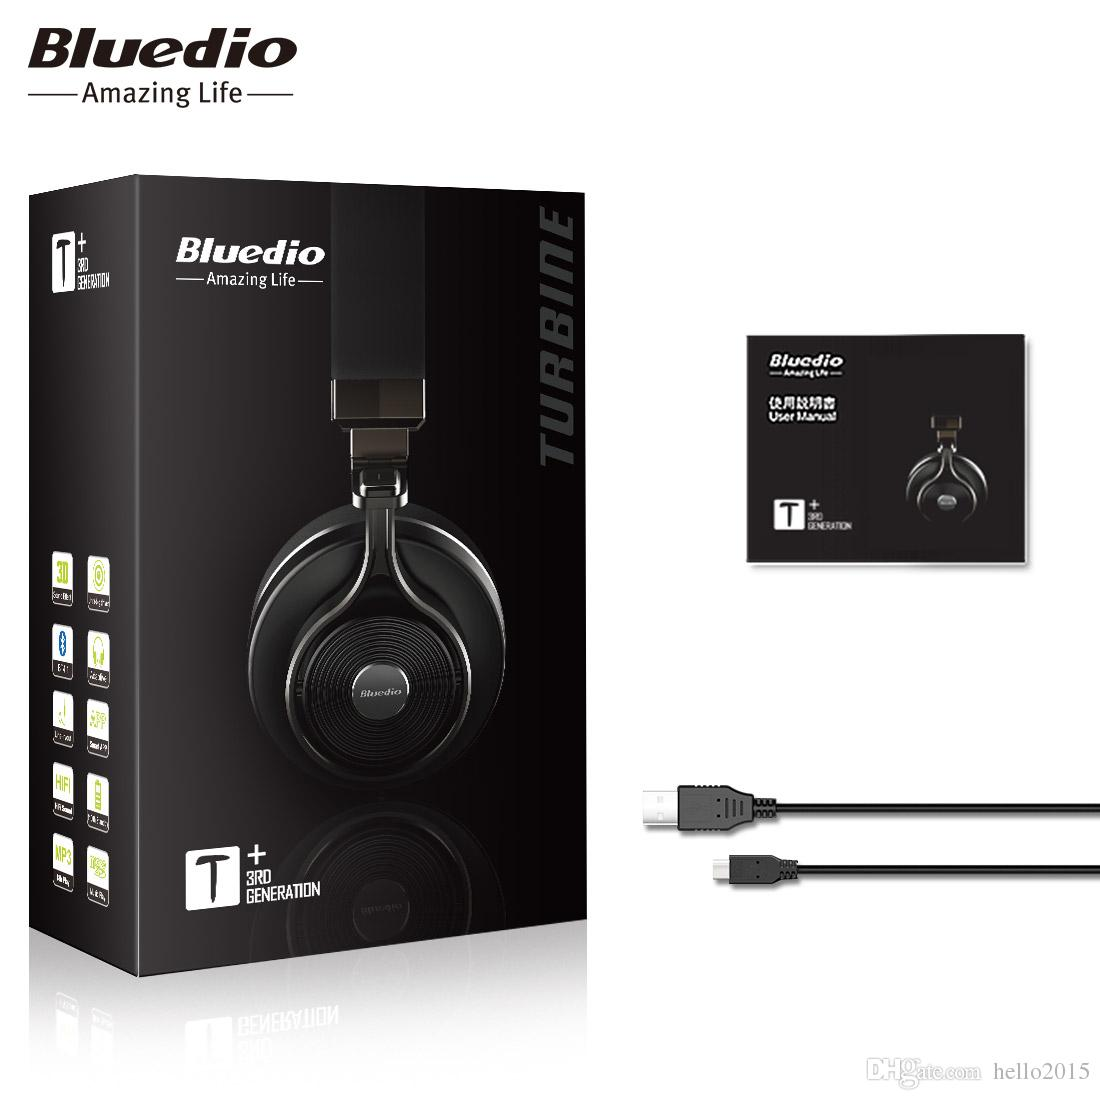 2228aea0048 Original Bluedio T3 Plus Wireless Bluetooth Headphones/Headset With  Microphone/Micro SD Card Slot Bluetooth Headphone/Headset Best Wireless  Headphones ...